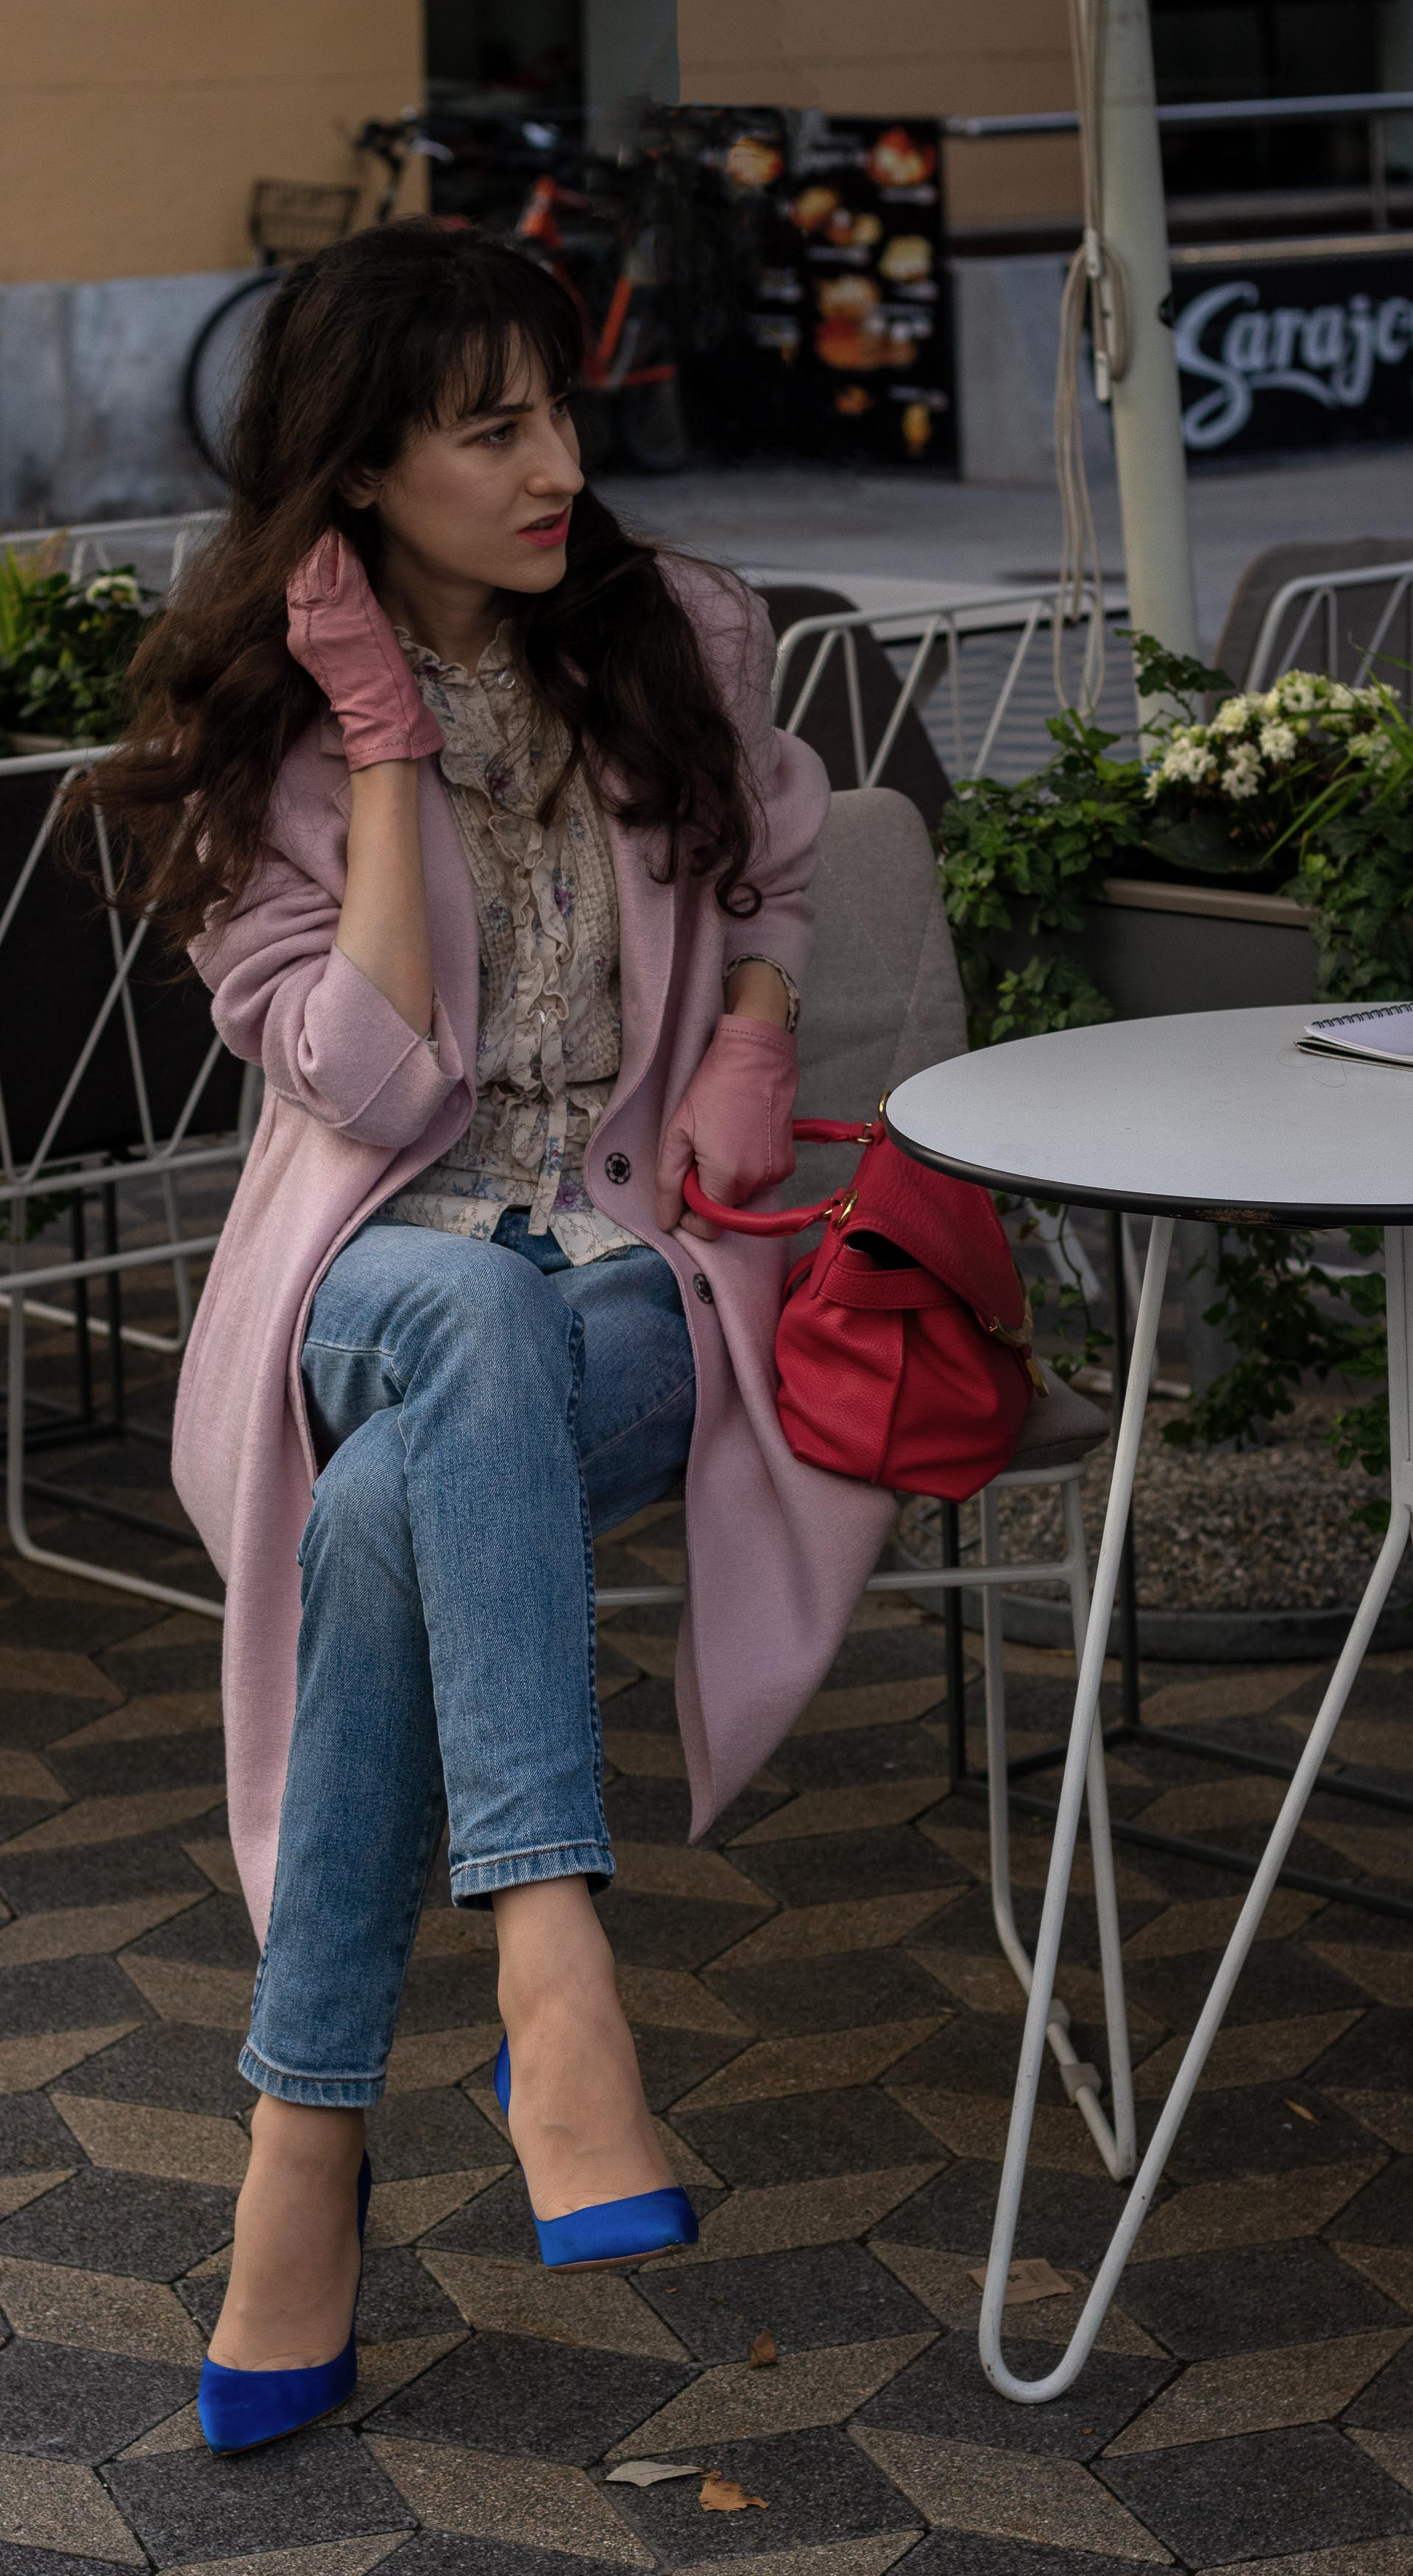 Fashion blogger Veronika Lipar of Brunette from Wall Street wearing Harris Wharf London pink coat blue A.P.C. Paris jeans floral blouse pink gloves Gianvito Rossi blue heels for brunch in fall